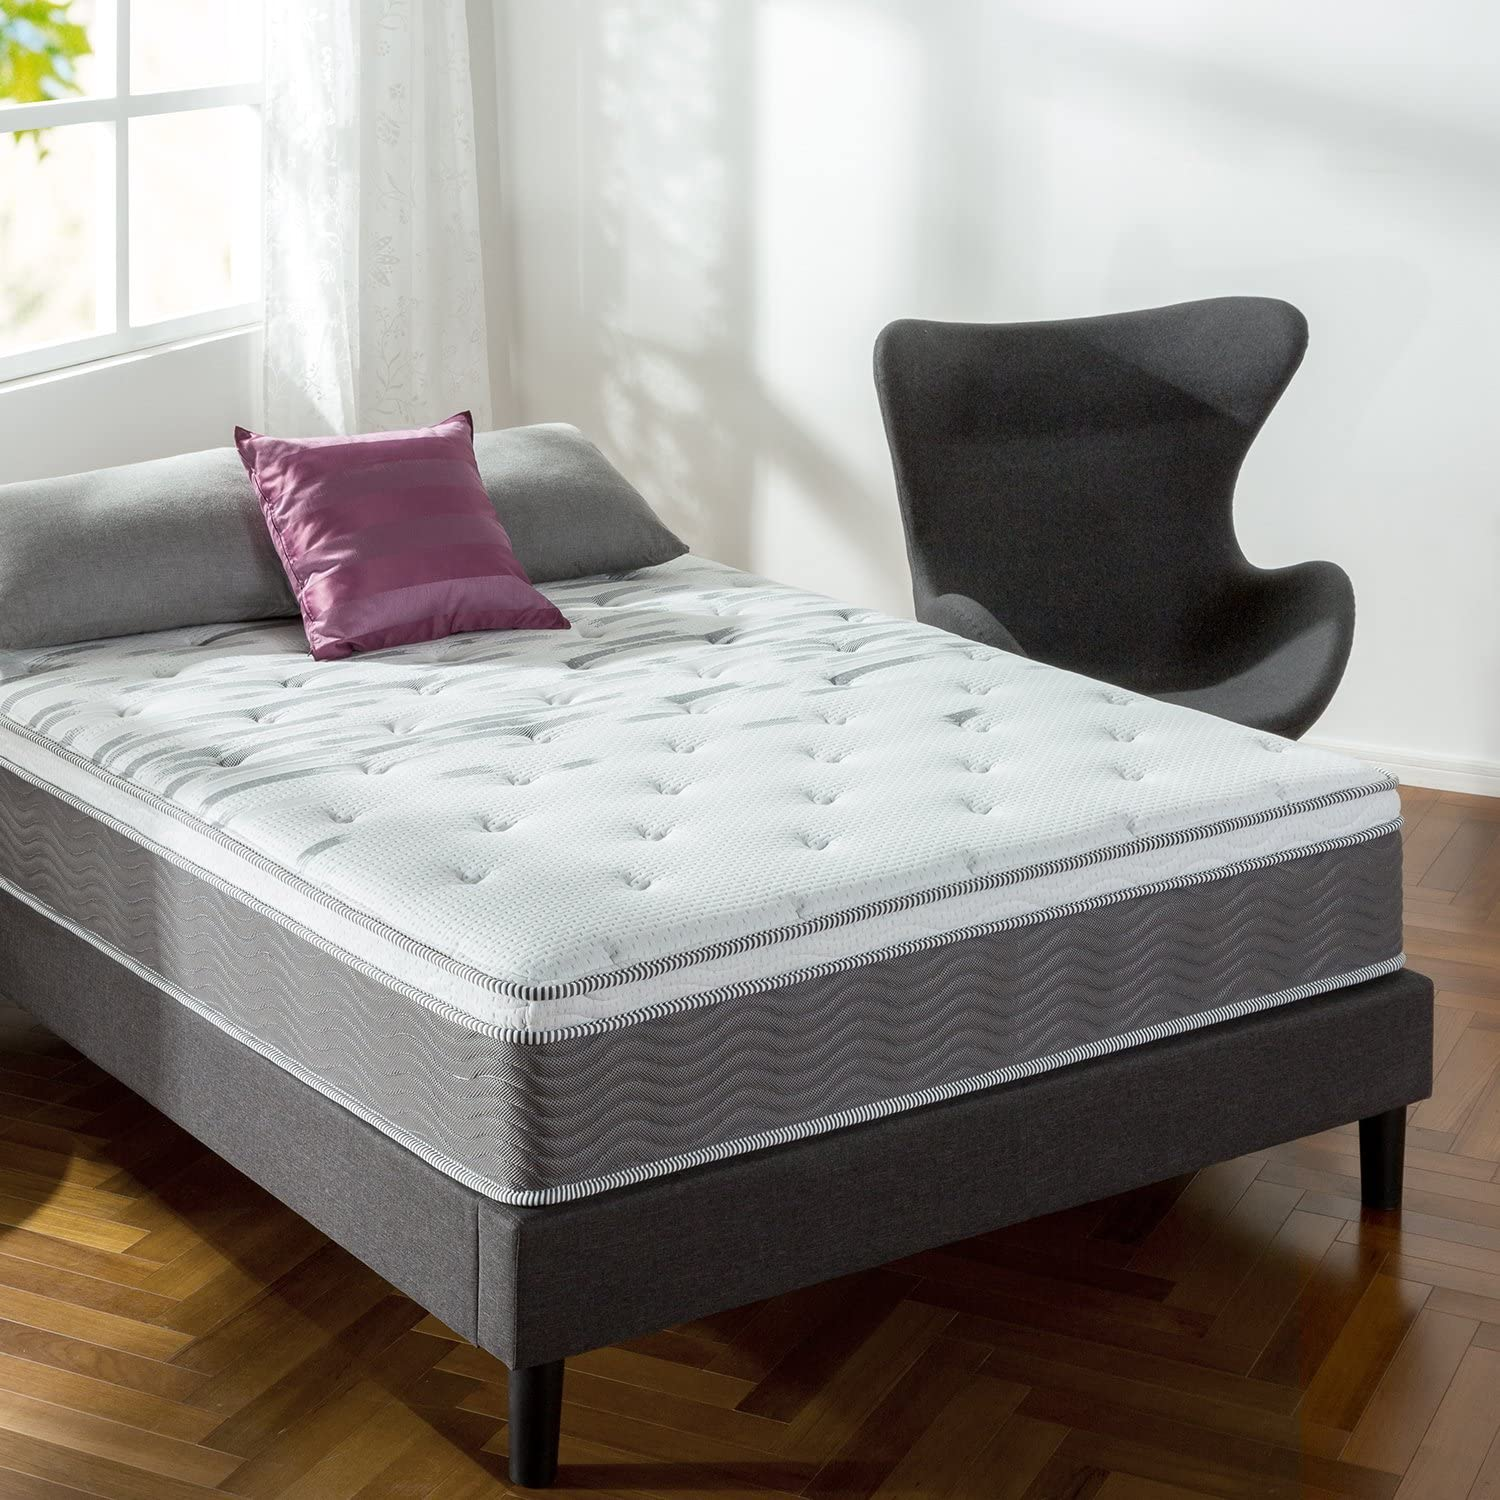 Extra Firm Pocket Spring Hybrid Mattress with Euro Top in Twin Size